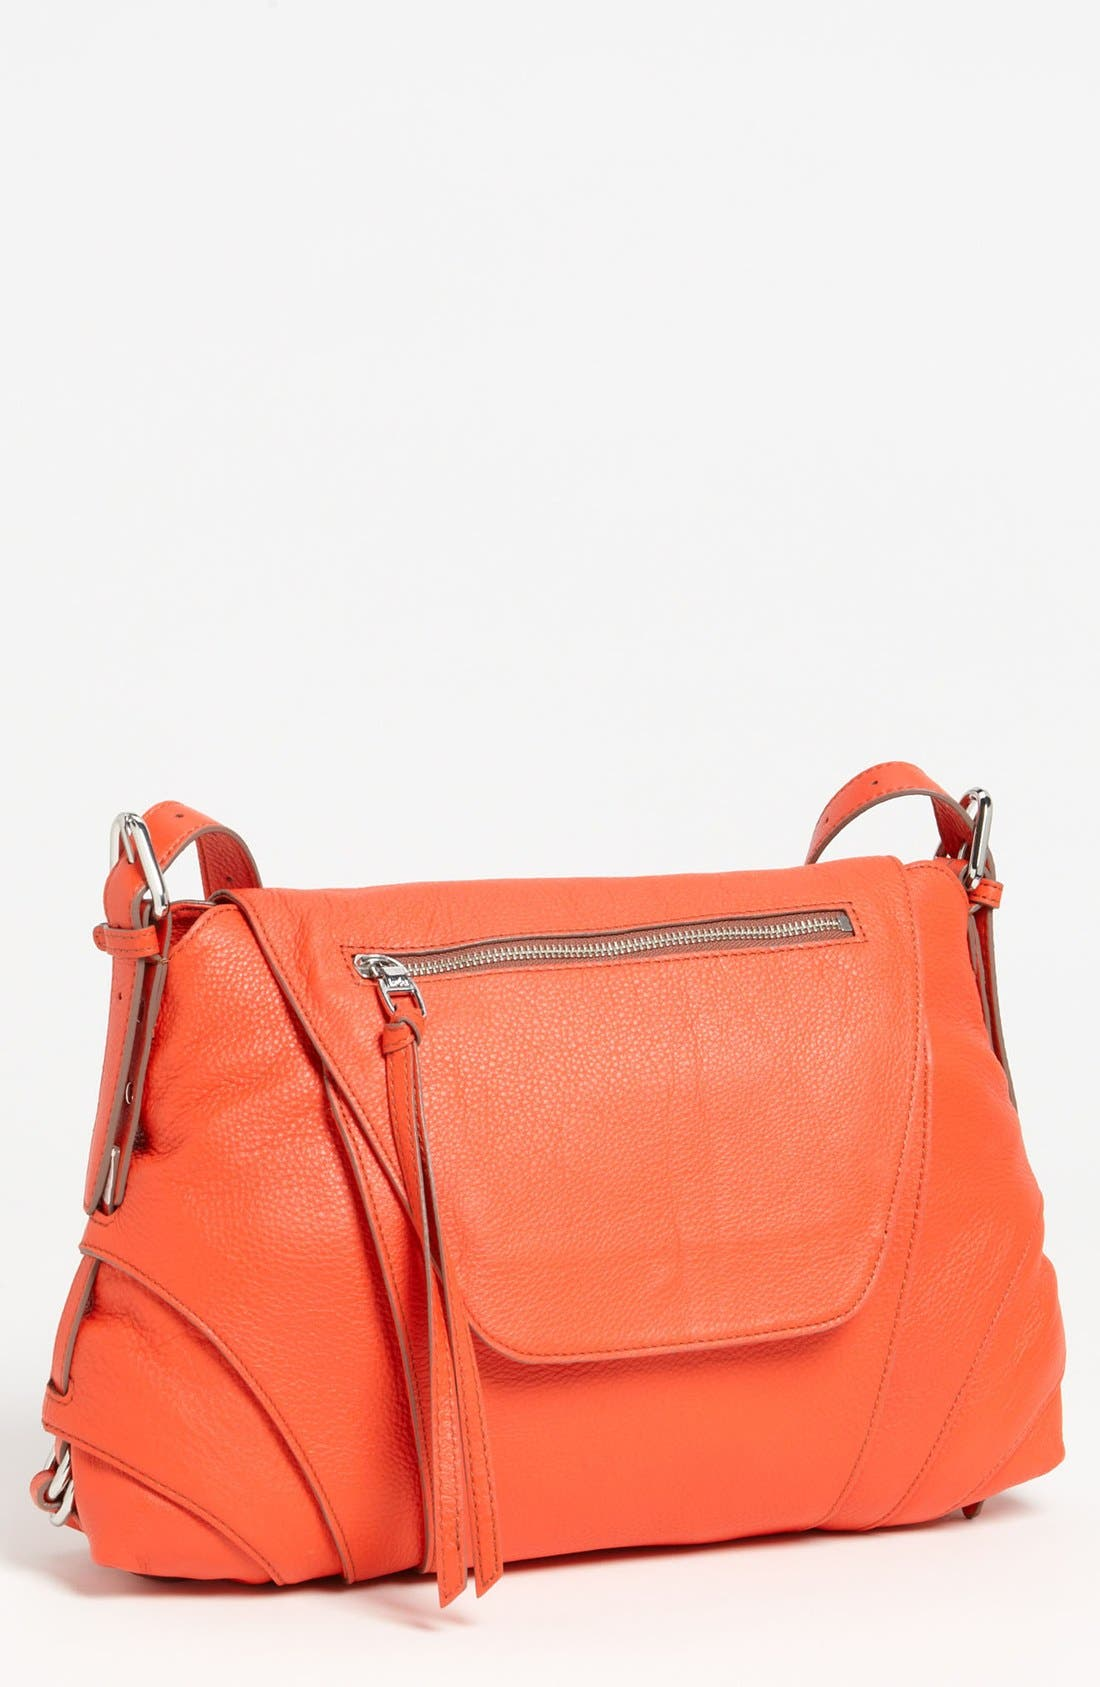 Alternate Image 1 Selected - Kooba 'Brielle' Leather Crossbody Bag